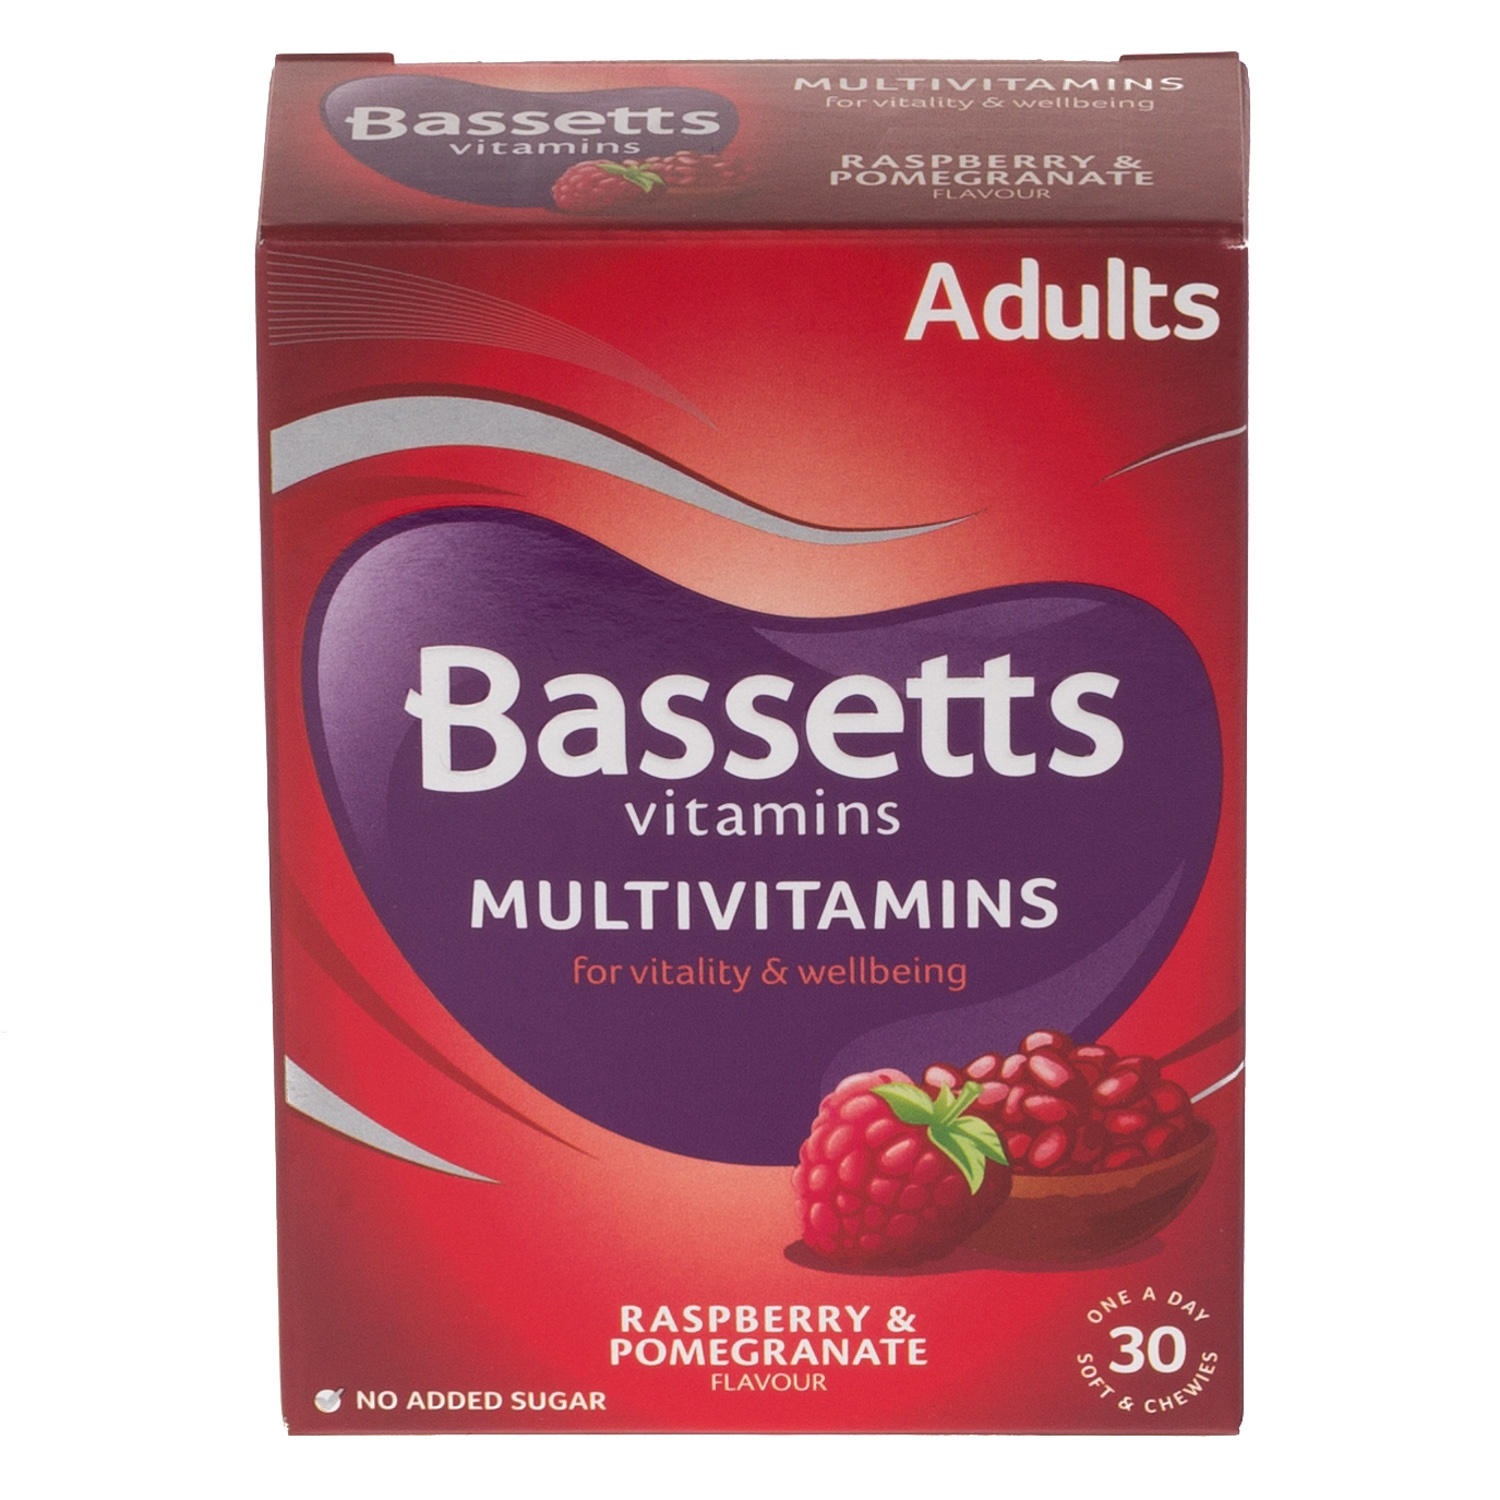 Bassetts Adult Multivitamins Raspberry & Pomegranate Flavour